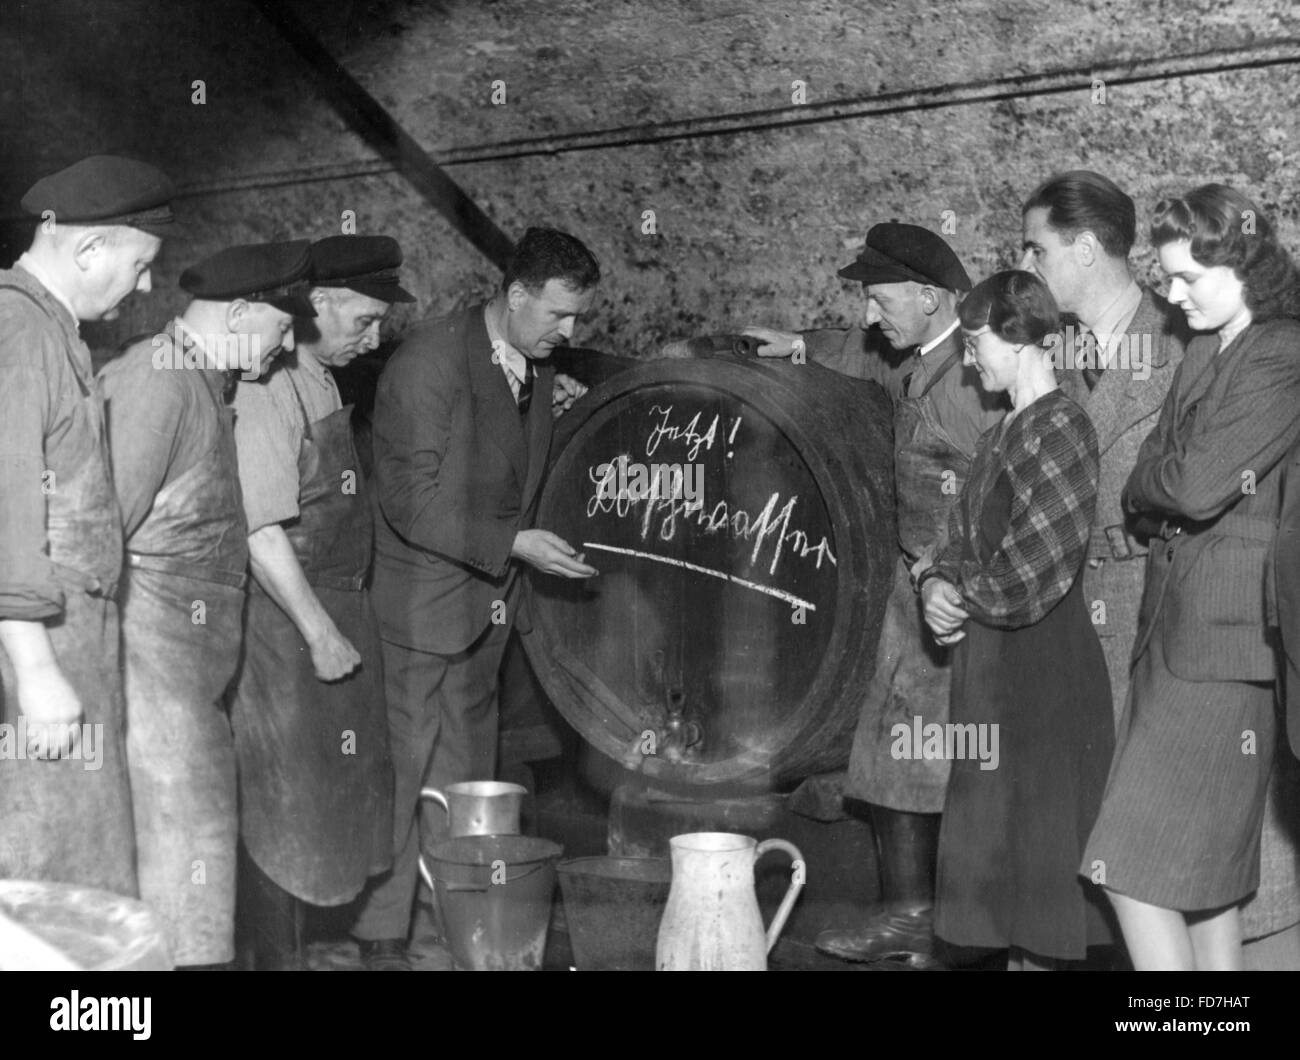 Wine barrel as a fire water container in Mainz, 1941 - Stock Image